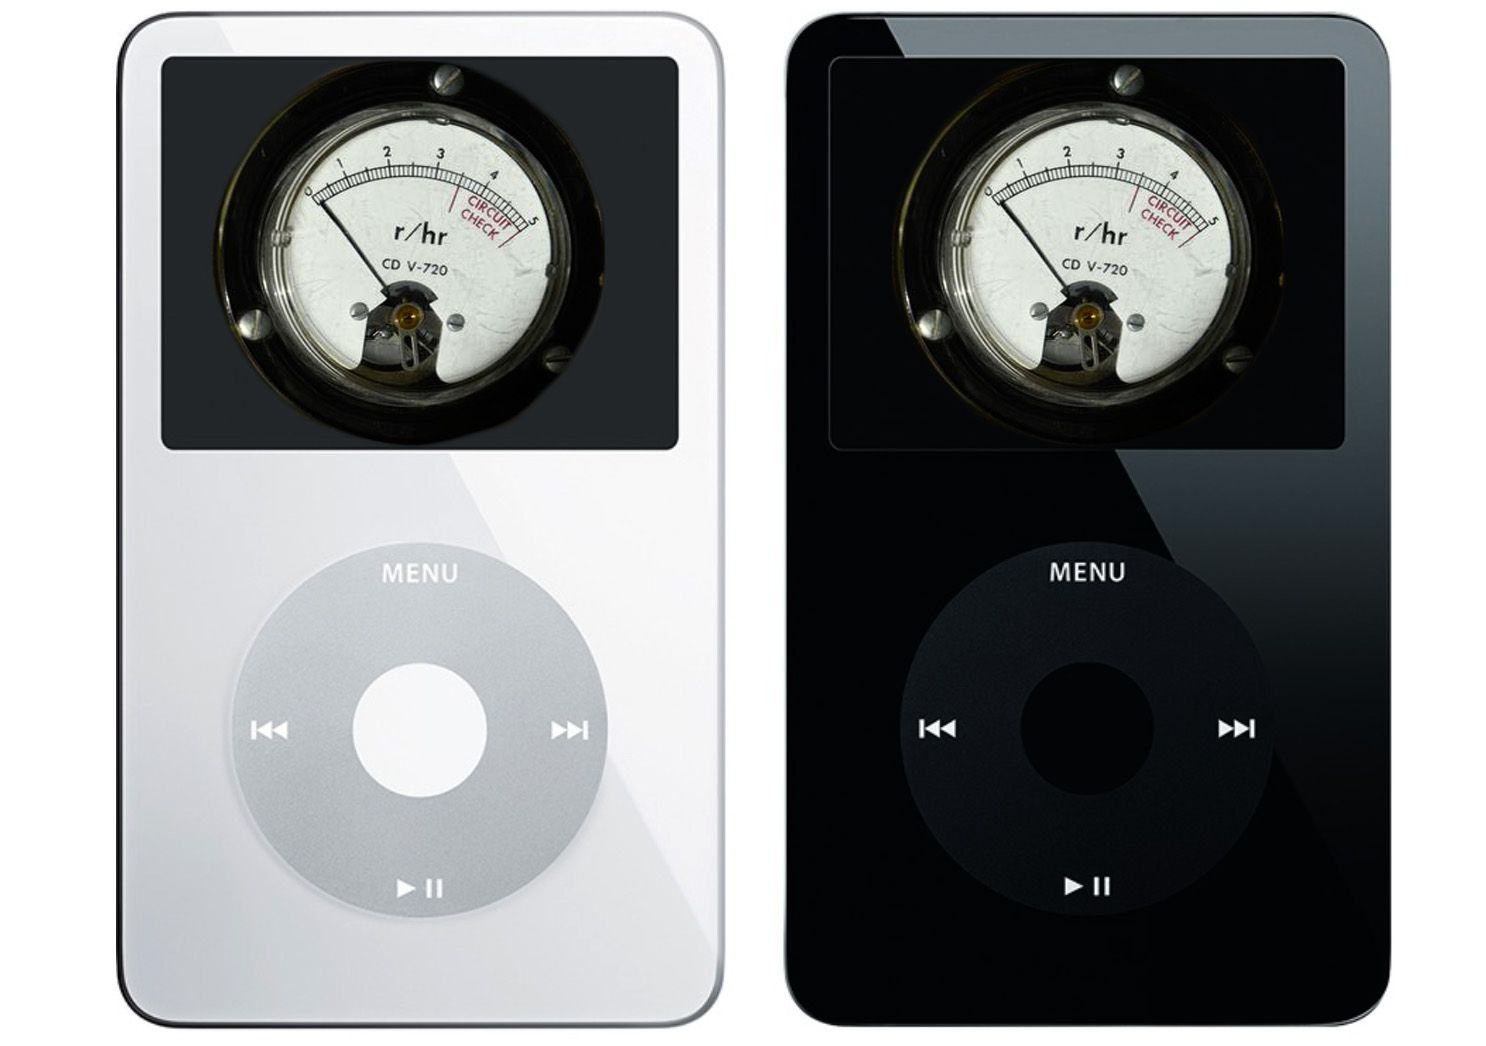 Wait ... Apple Helped the U.S. Government Build a Top-Secret iPod?